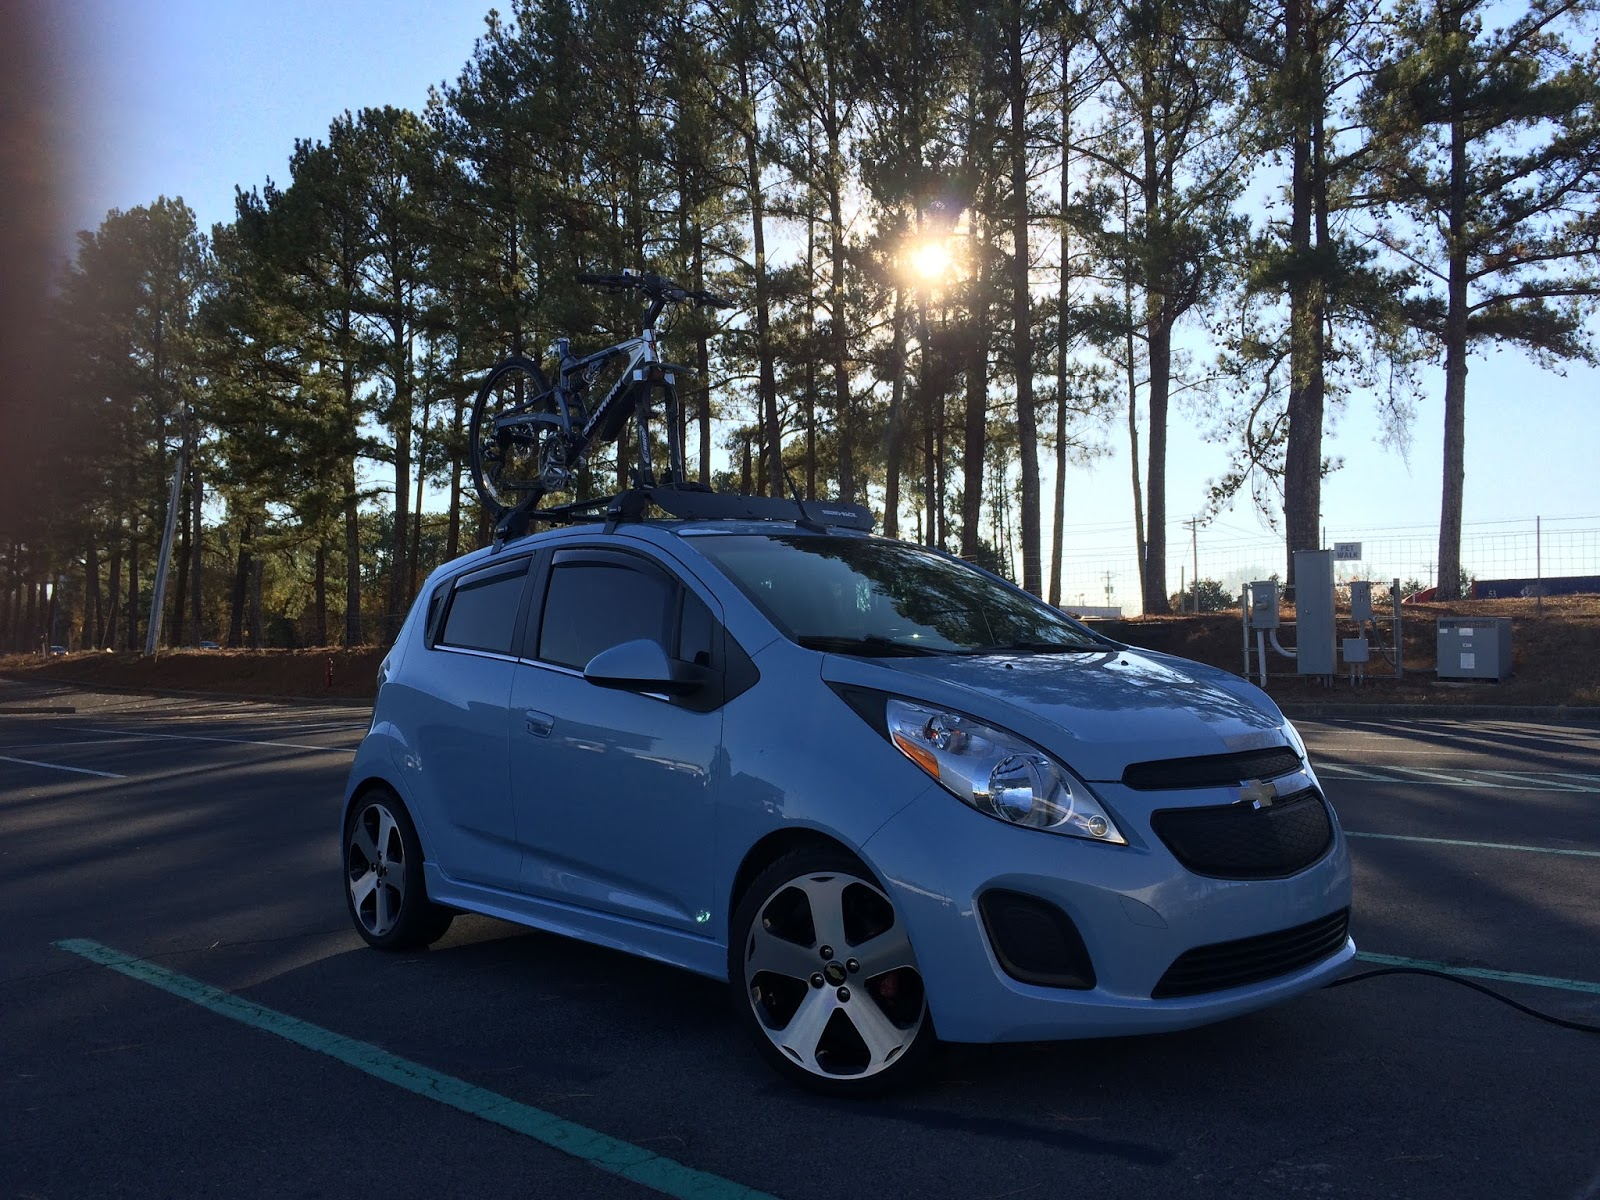 2016 11 19%2B16.01.04 my 2014 chevy spark ev 2017 Chevy Spark EV at gsmx.co